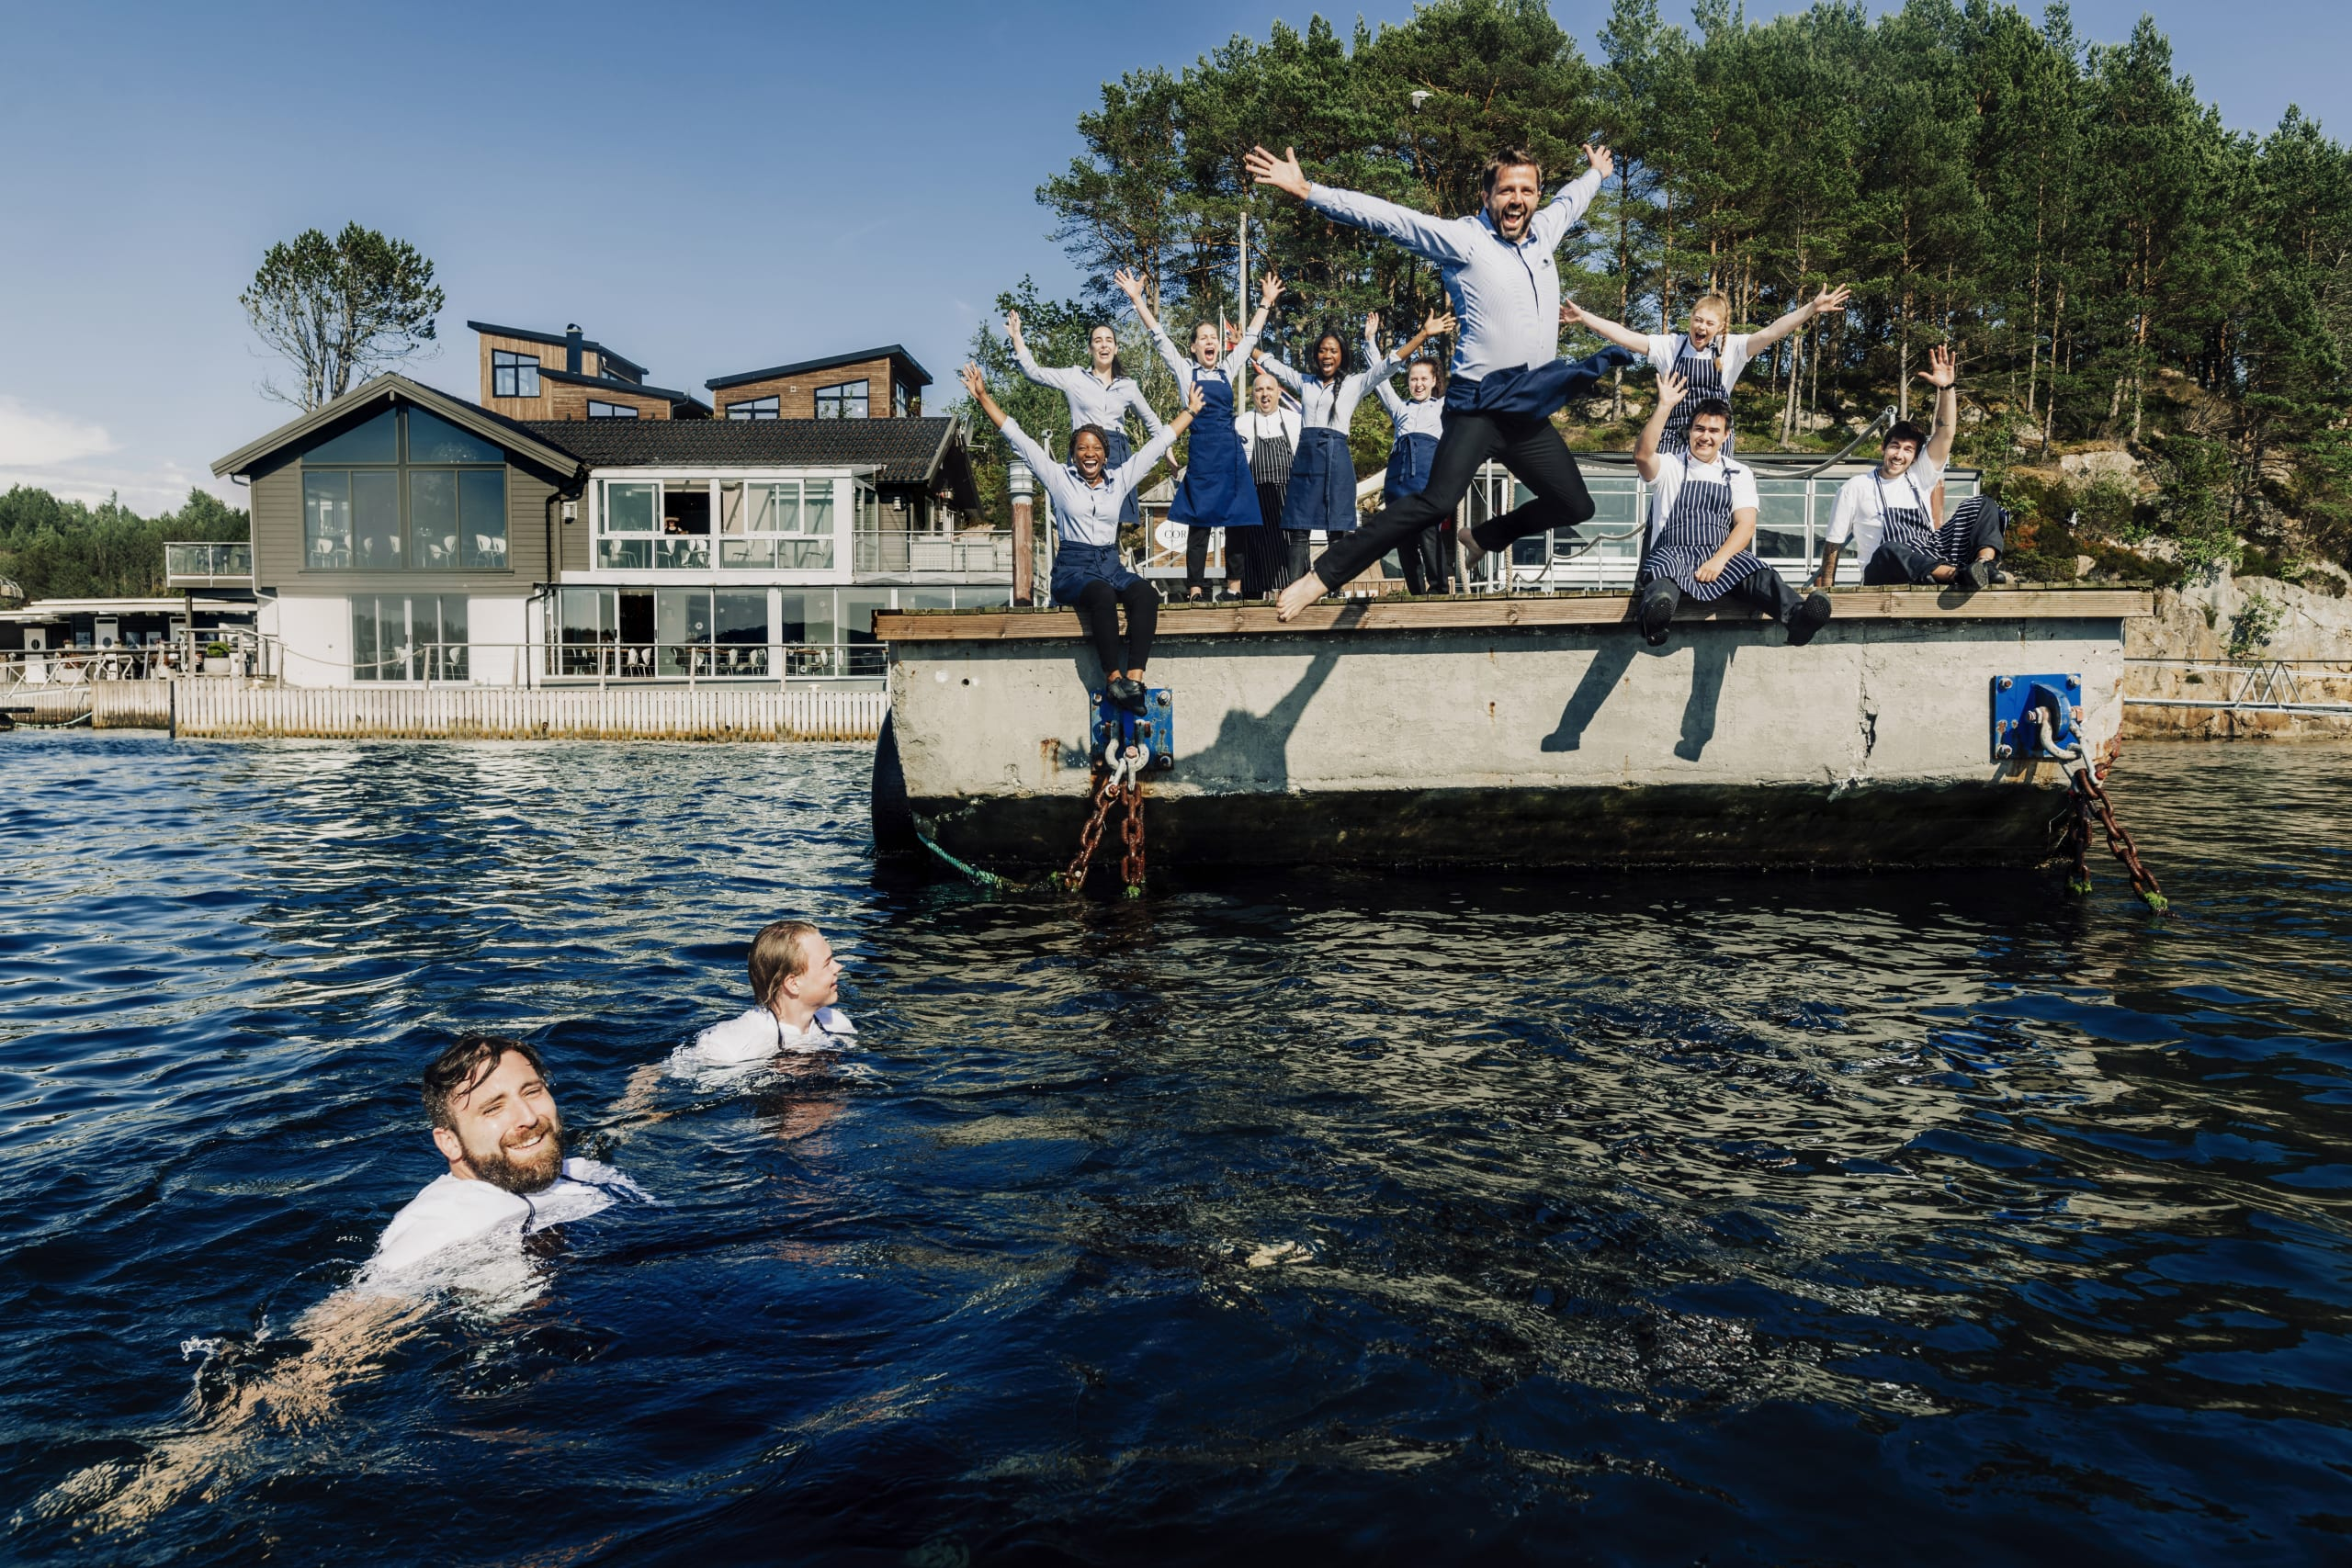 Chefs and crew jumping into the ocean